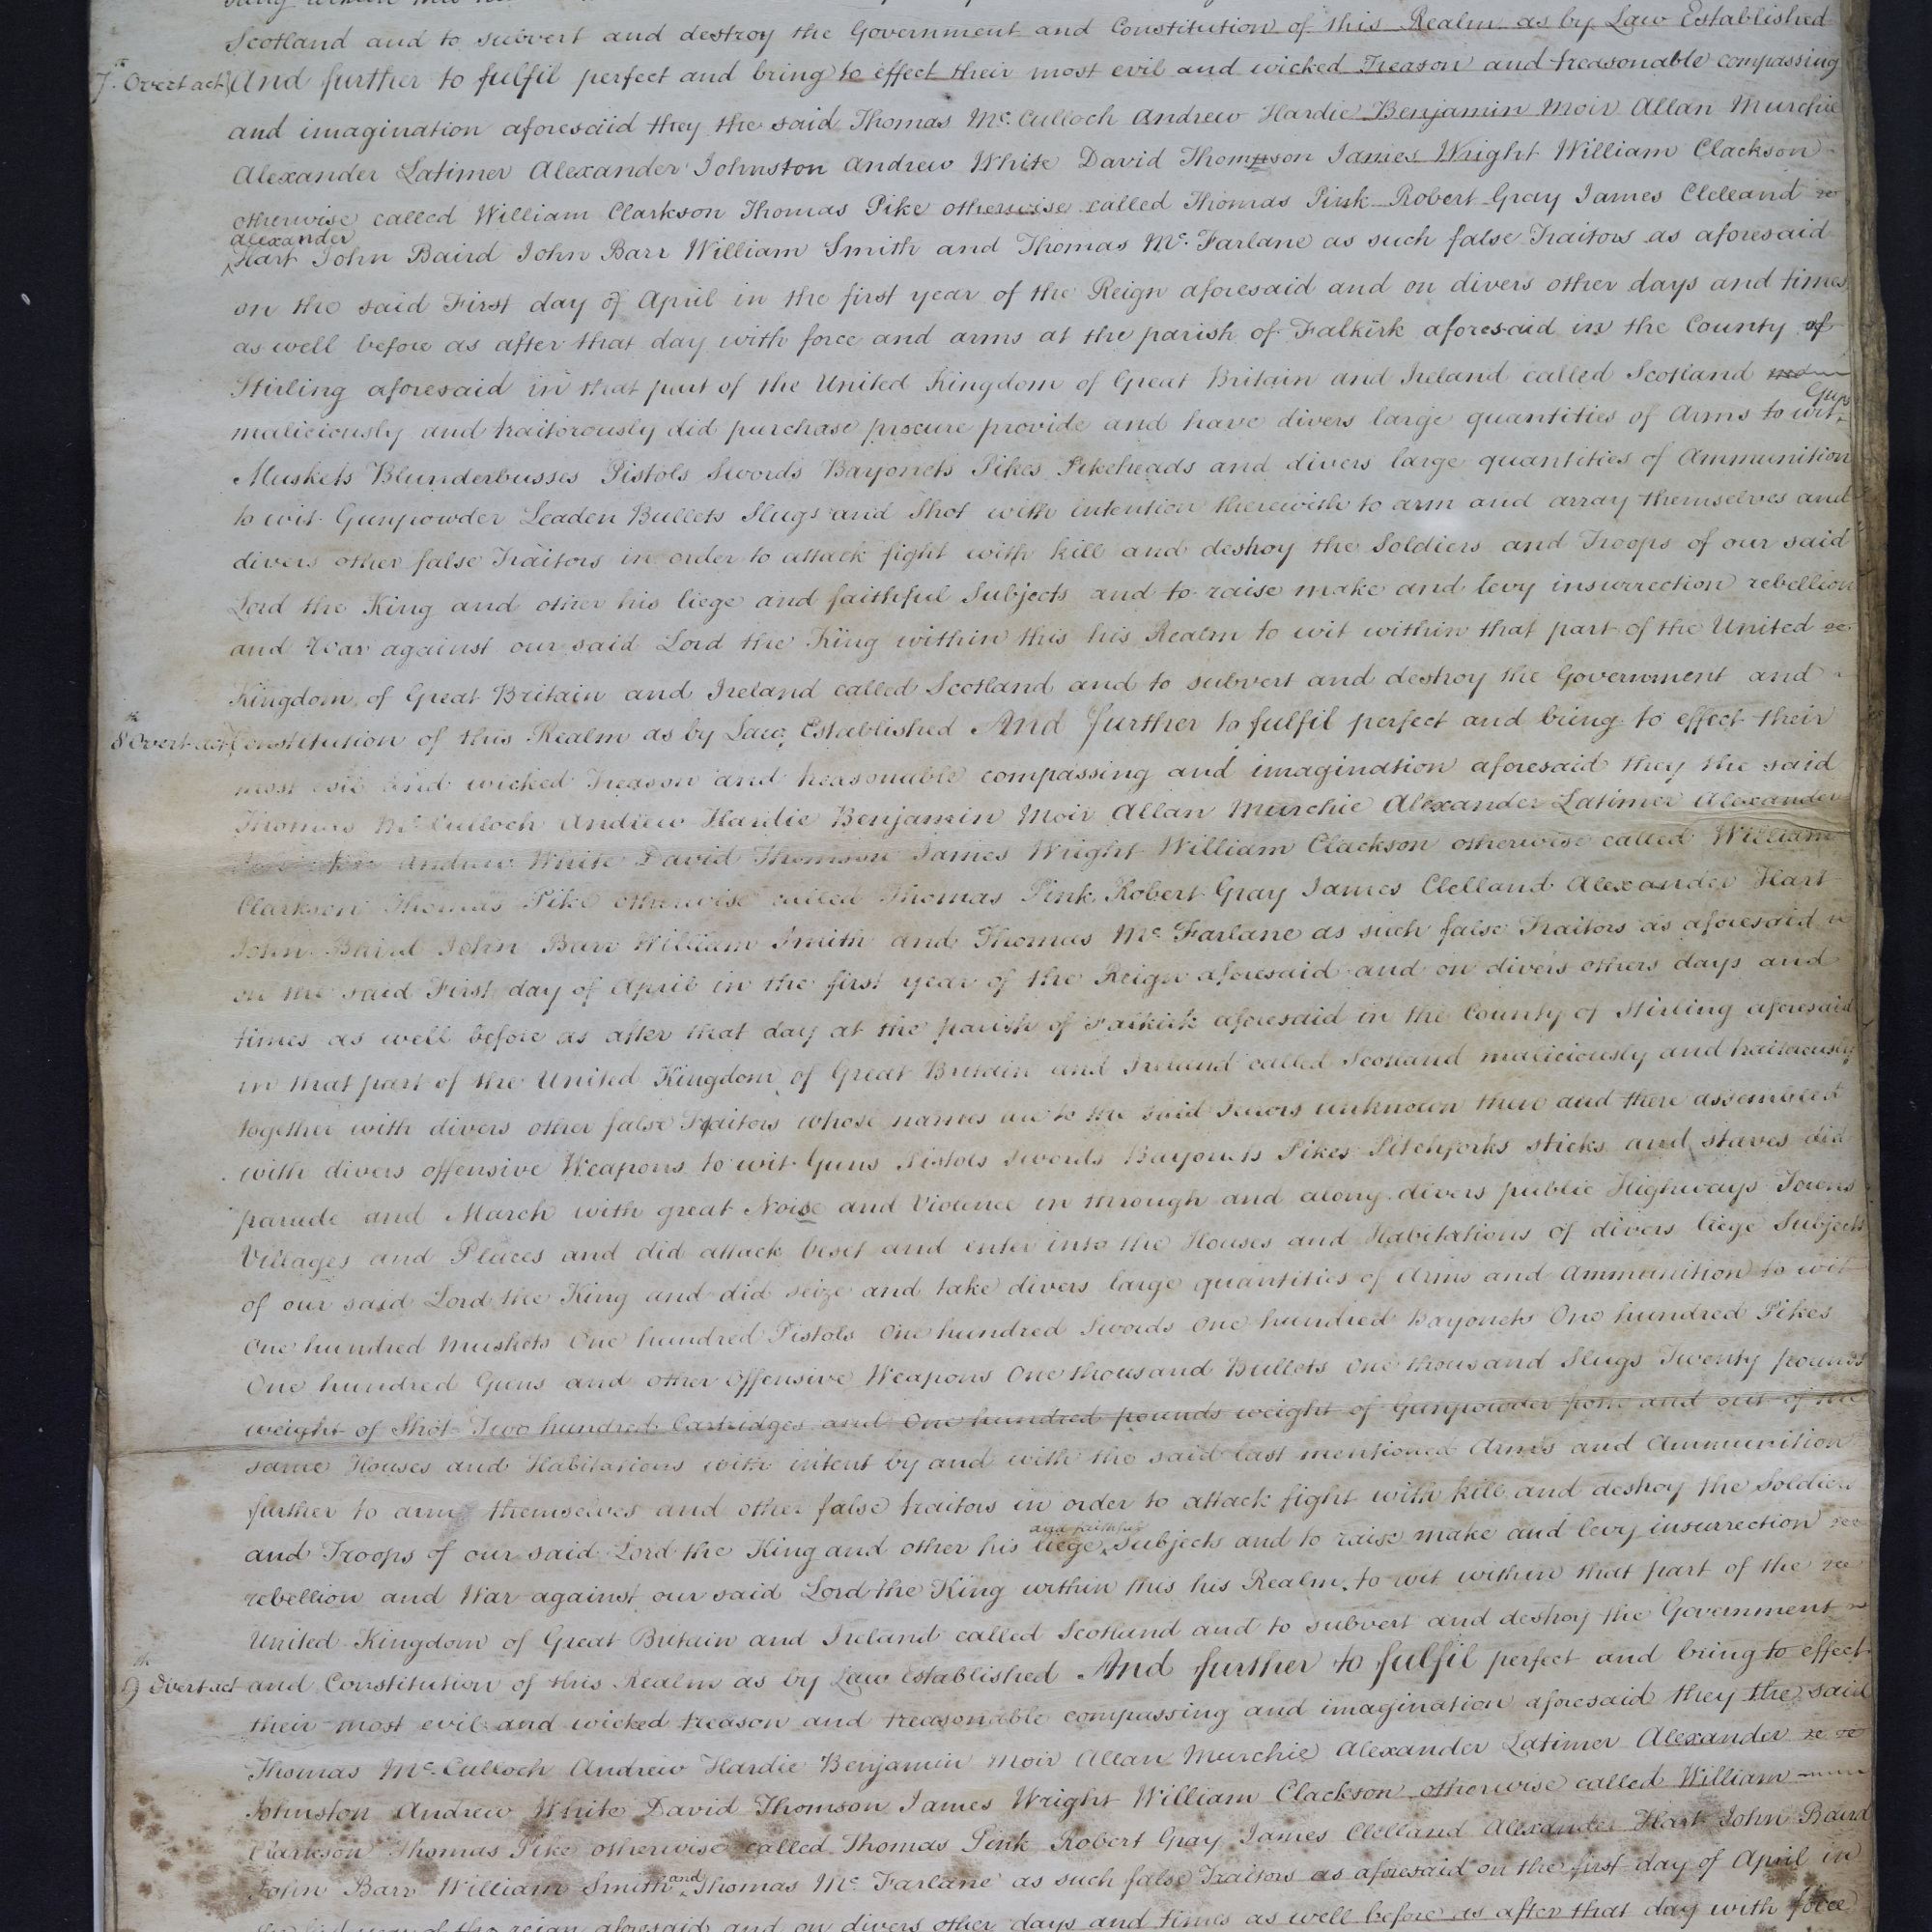 Treason trials for the County of Stirling, the Bonnymuir case. True bills brought against 18 men. National Records of Scotland, Crown copyright, JC21/2/1 p4